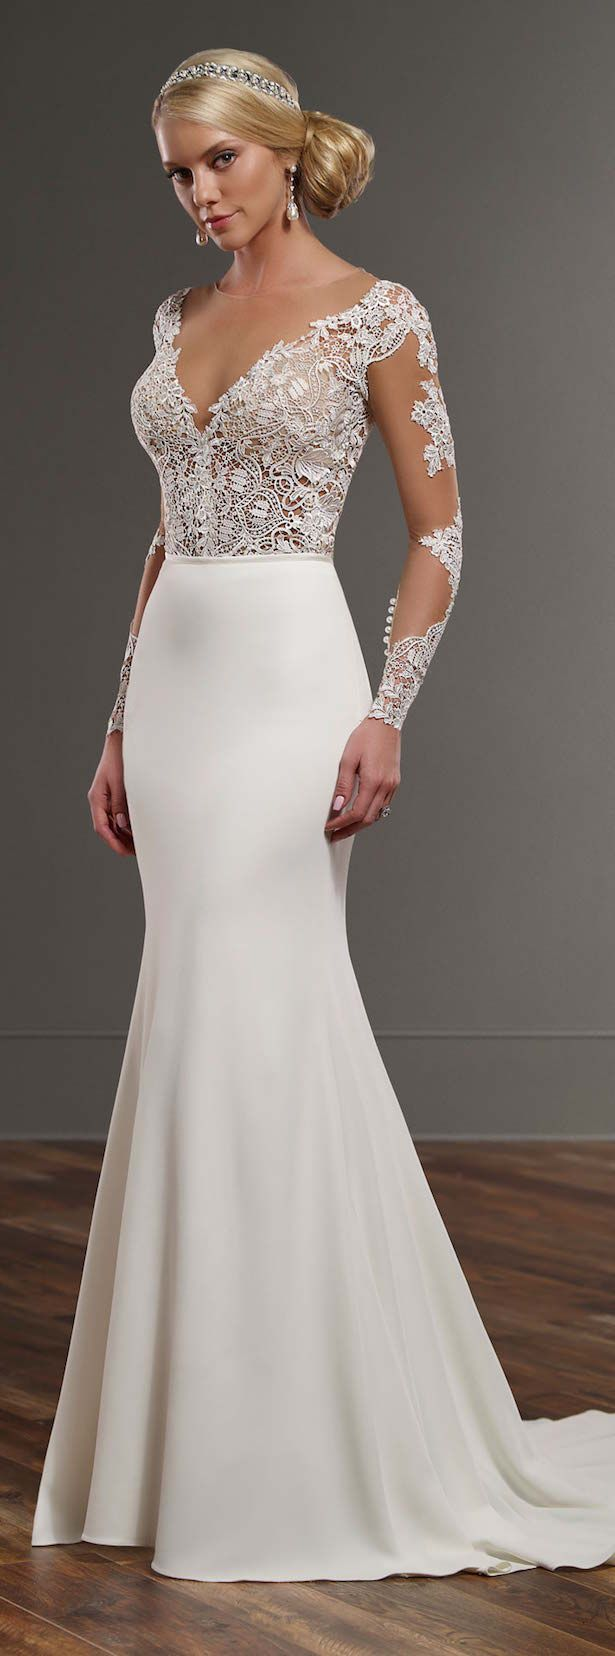 Source: Martina Liana Spring 2016 Bridal Collection   via: http://www.dreammakersevent.com